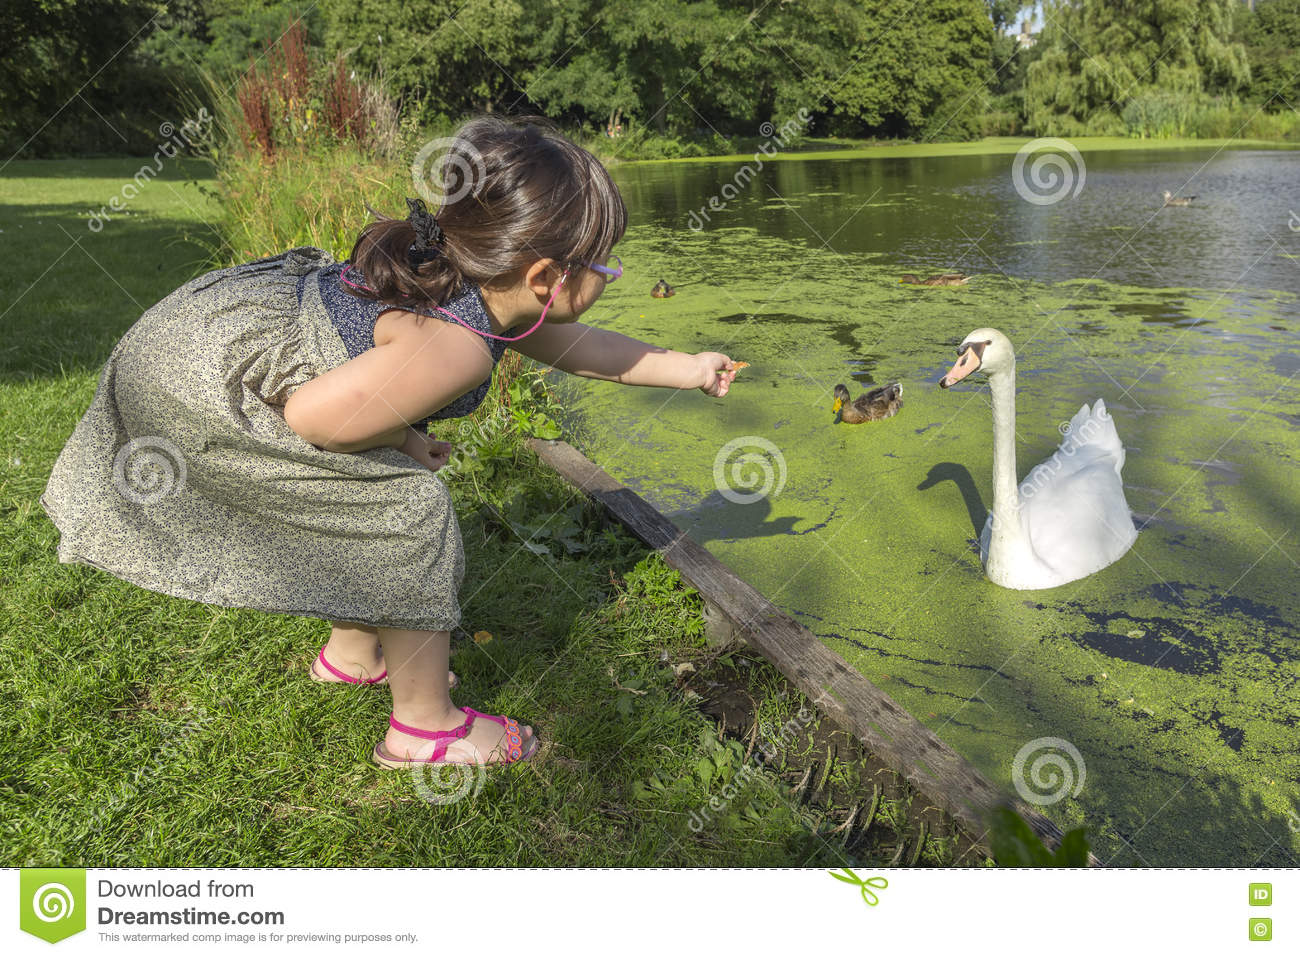 Feeding swans and ducks